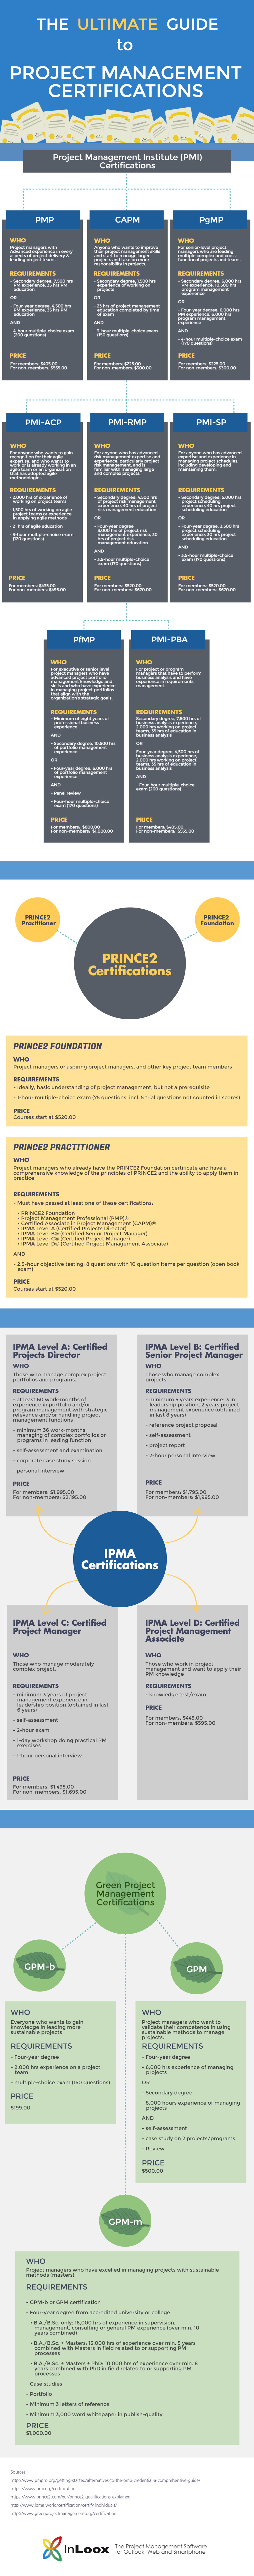 The Ultimate Guide to Project Management Certifications INFOGRAPHIC